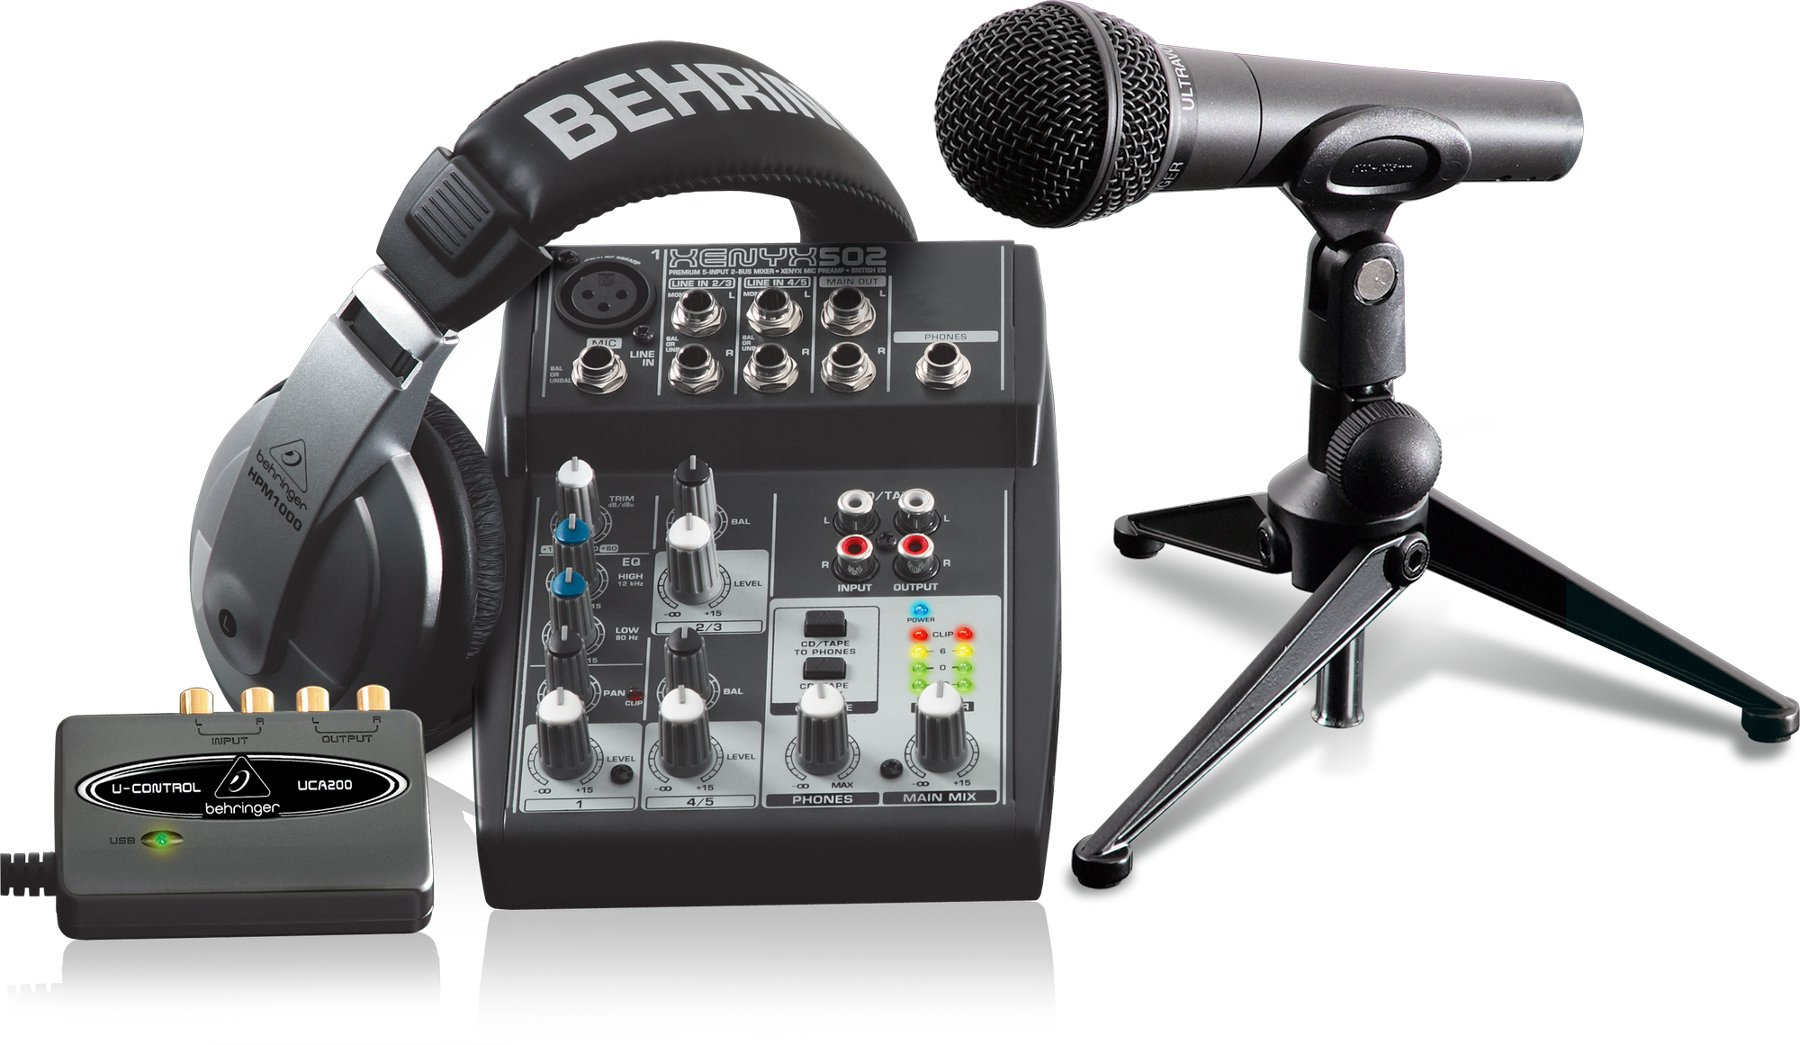 behringer podcaststudio usb podcasting bundle with mic mixer headphones usb interface full. Black Bedroom Furniture Sets. Home Design Ideas